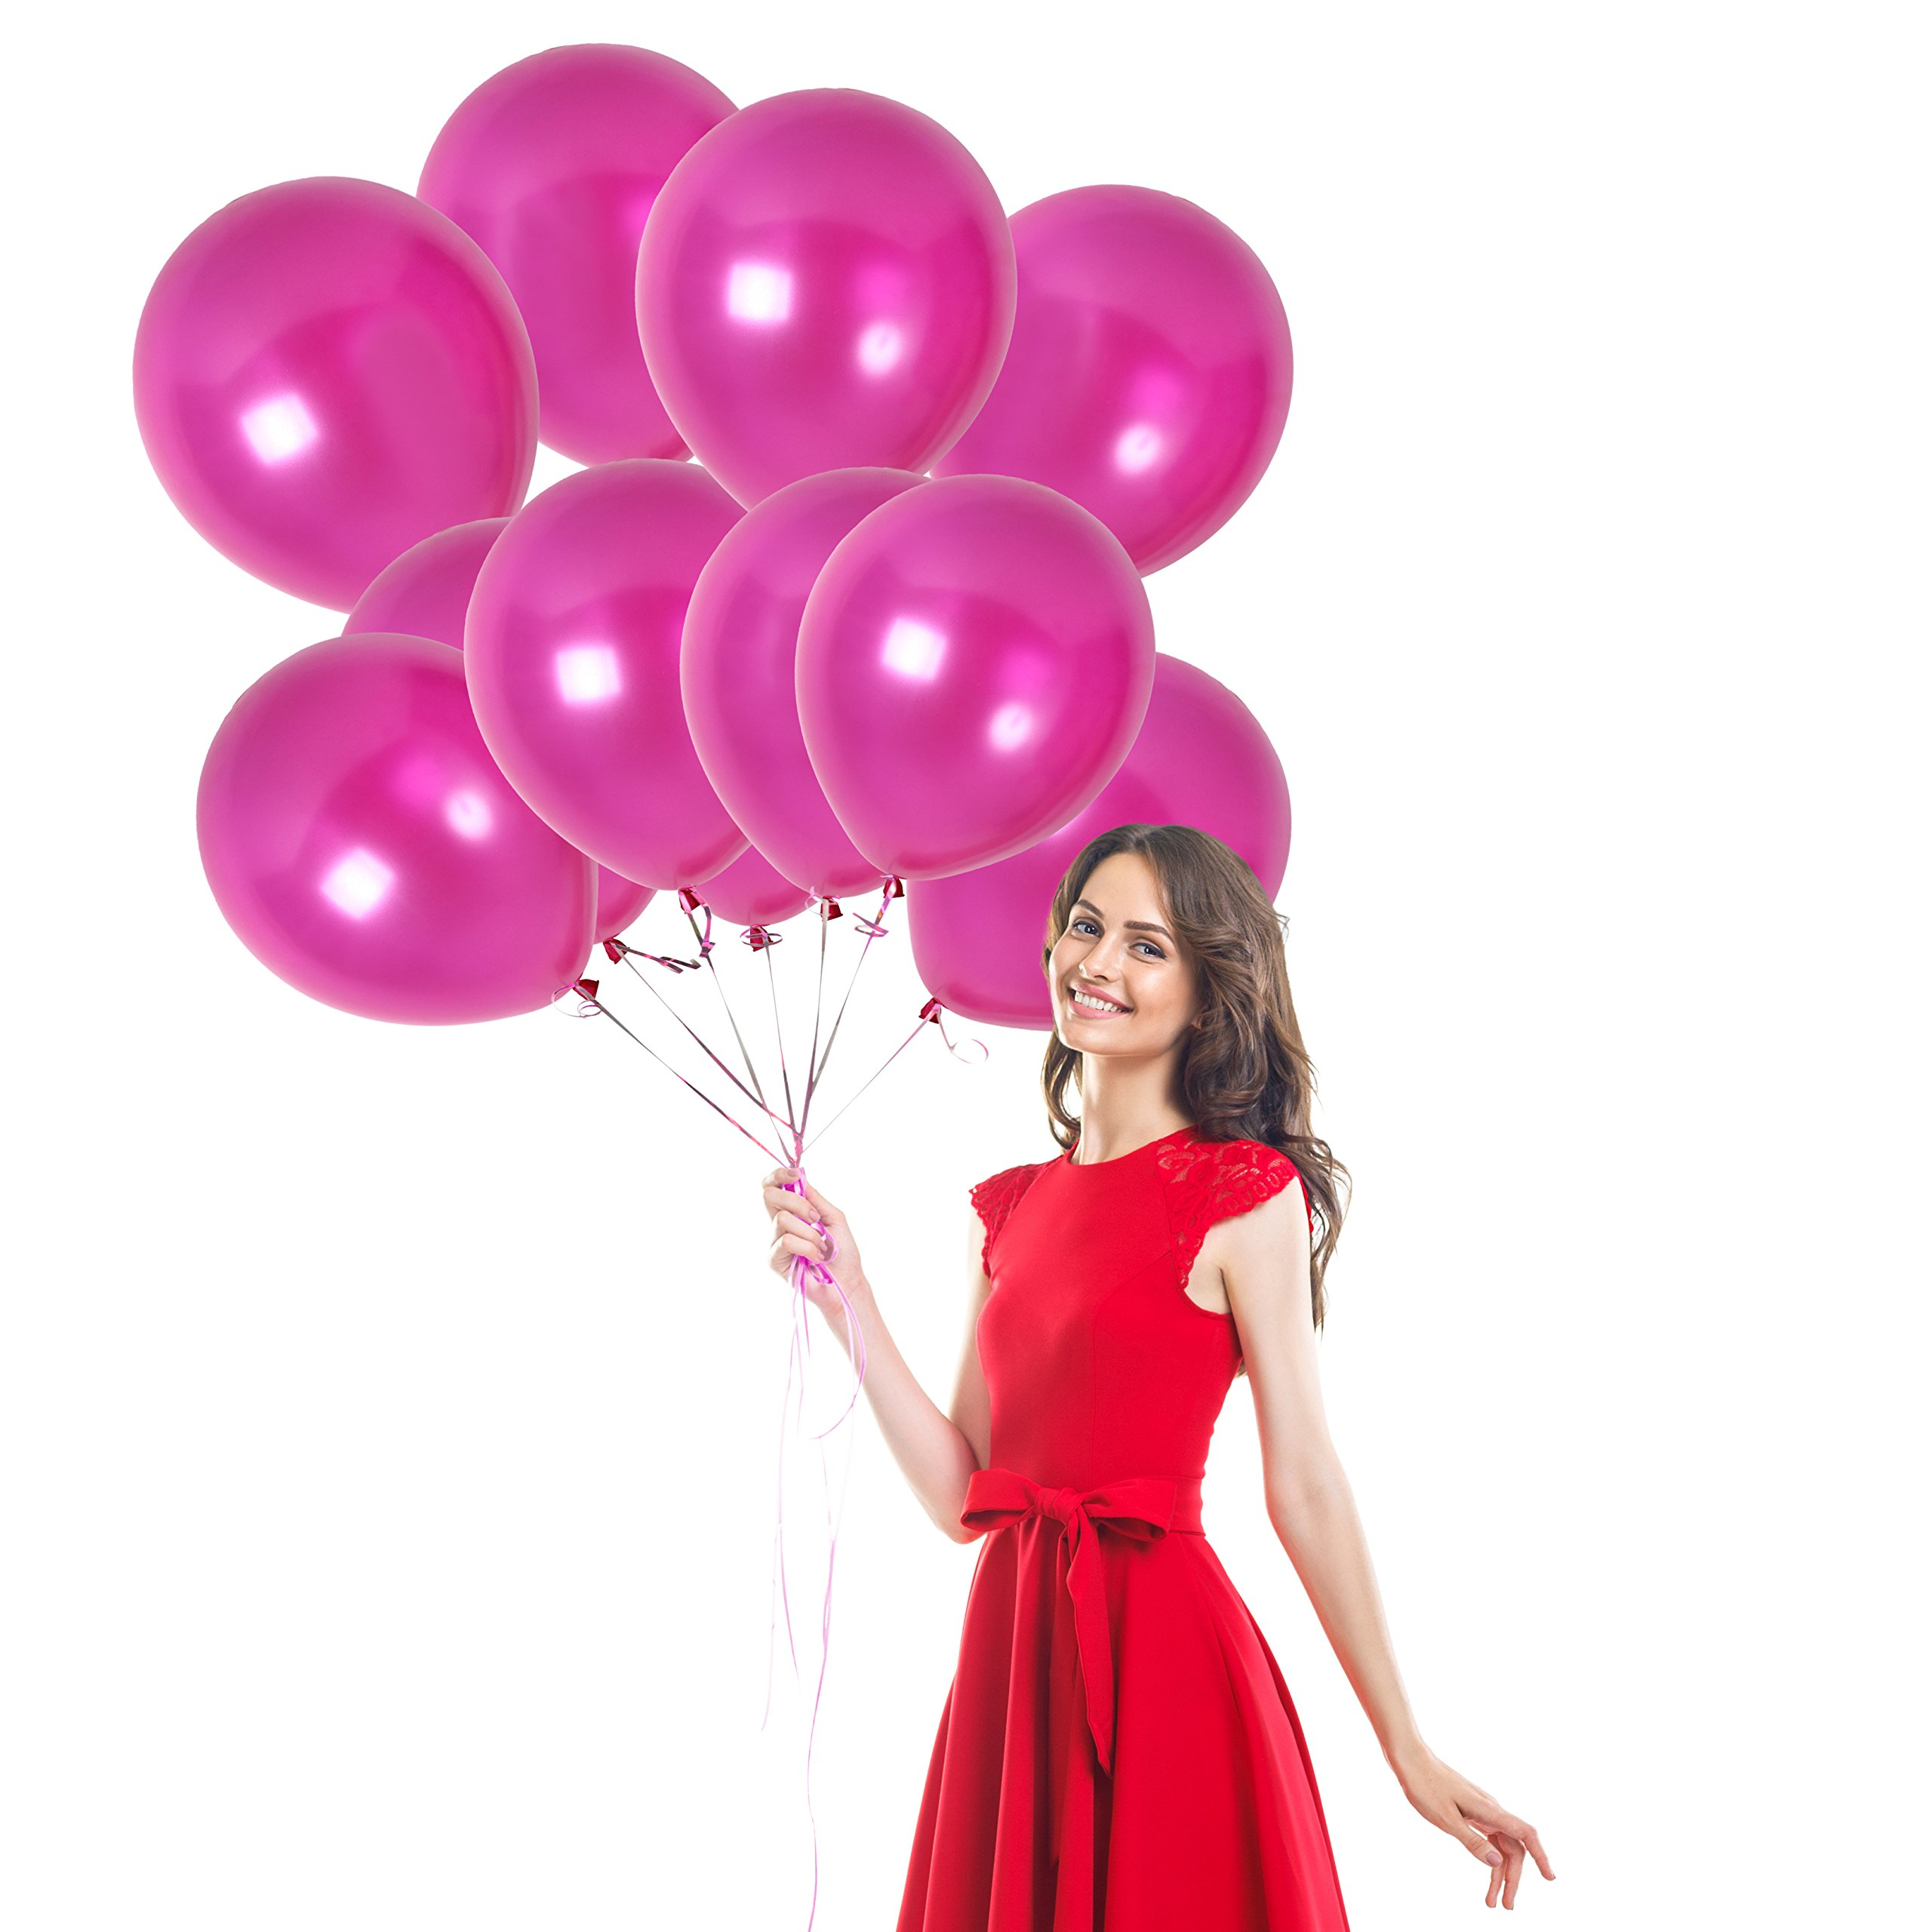 100pcs of 12-Inch Thick Shiny Metallic Latex Magenta Fuchsia Pink Balloons with Ribbon Wedding Decorations Graduation Party Birthday Valentines by Treasures Gifted